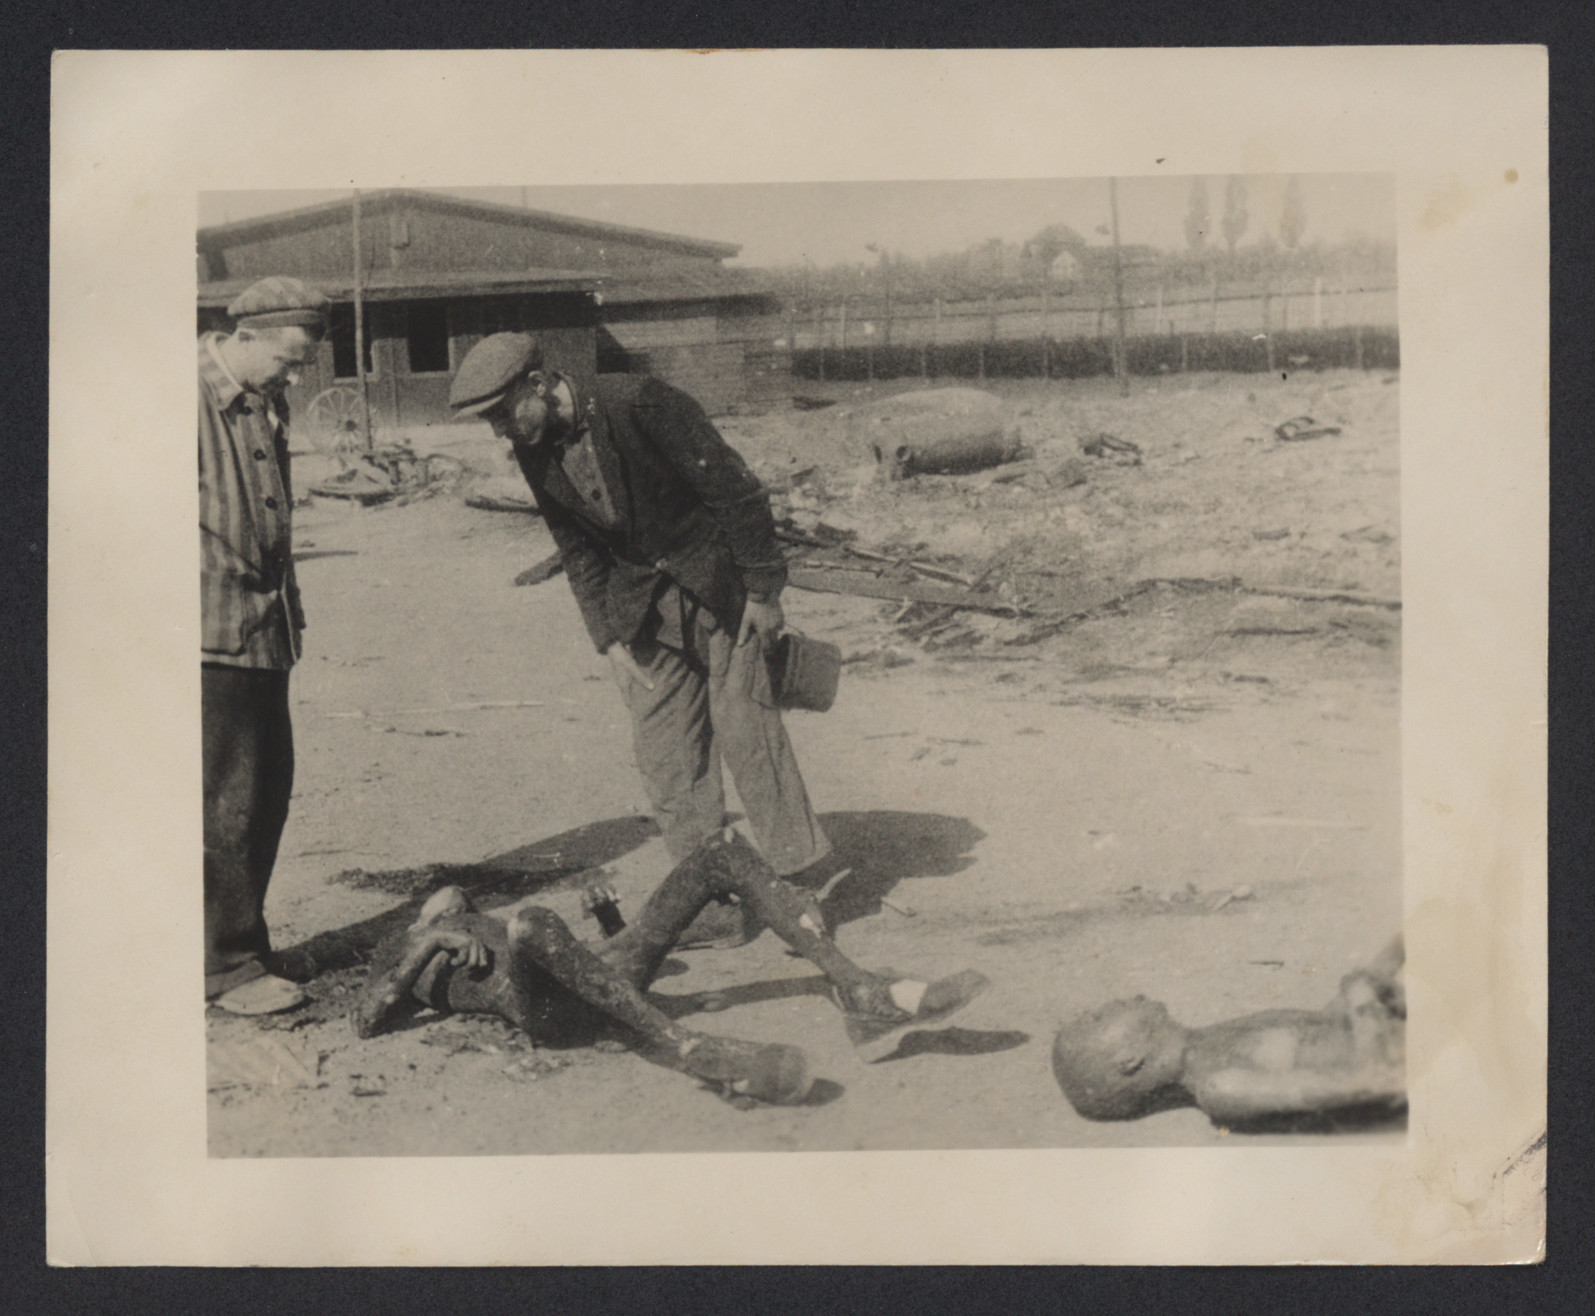 Survivors view charred corpses at Leipzig-Thekla, a subcamp of Buchenwald.